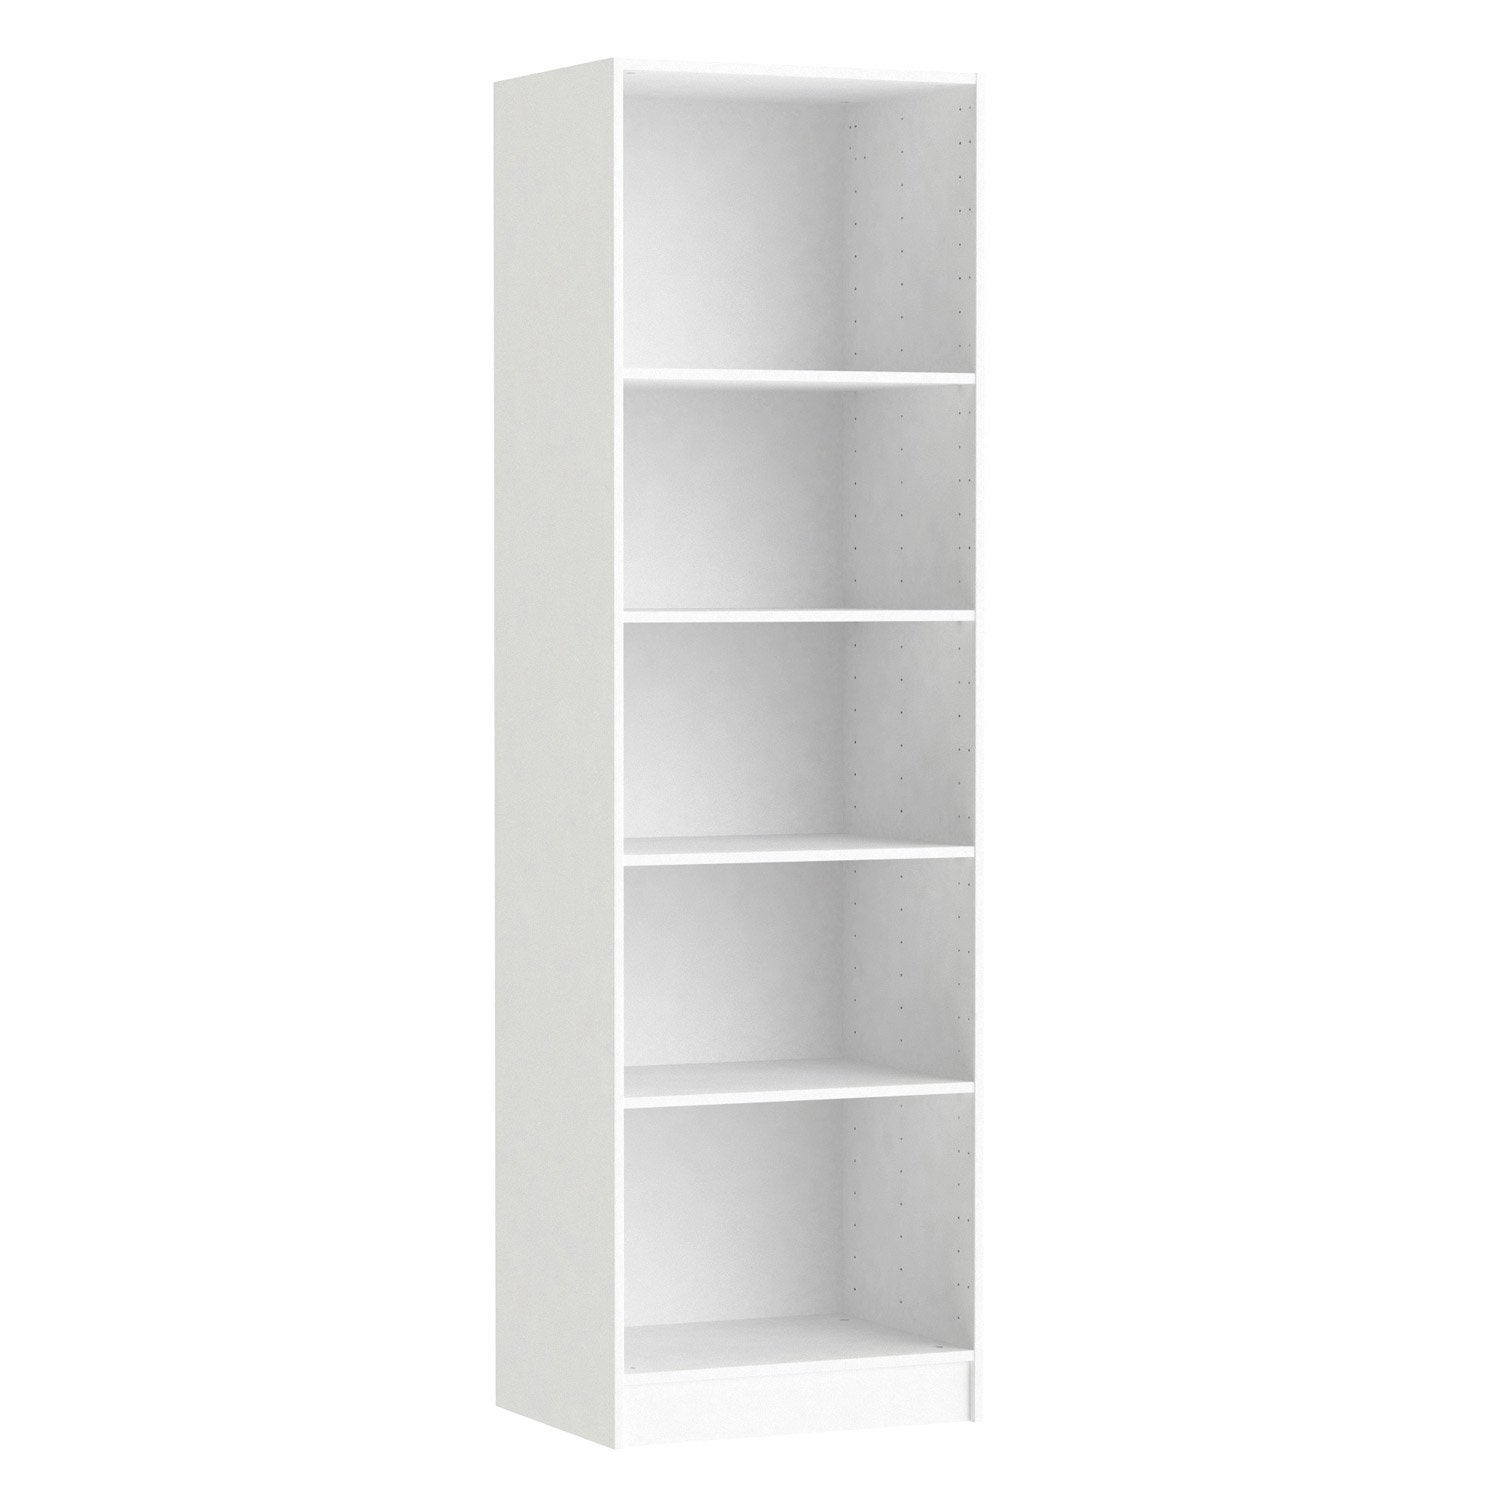 Caisson SPACEO Home 200 x 60 x 45 cm, blanc | Leroy Merlin